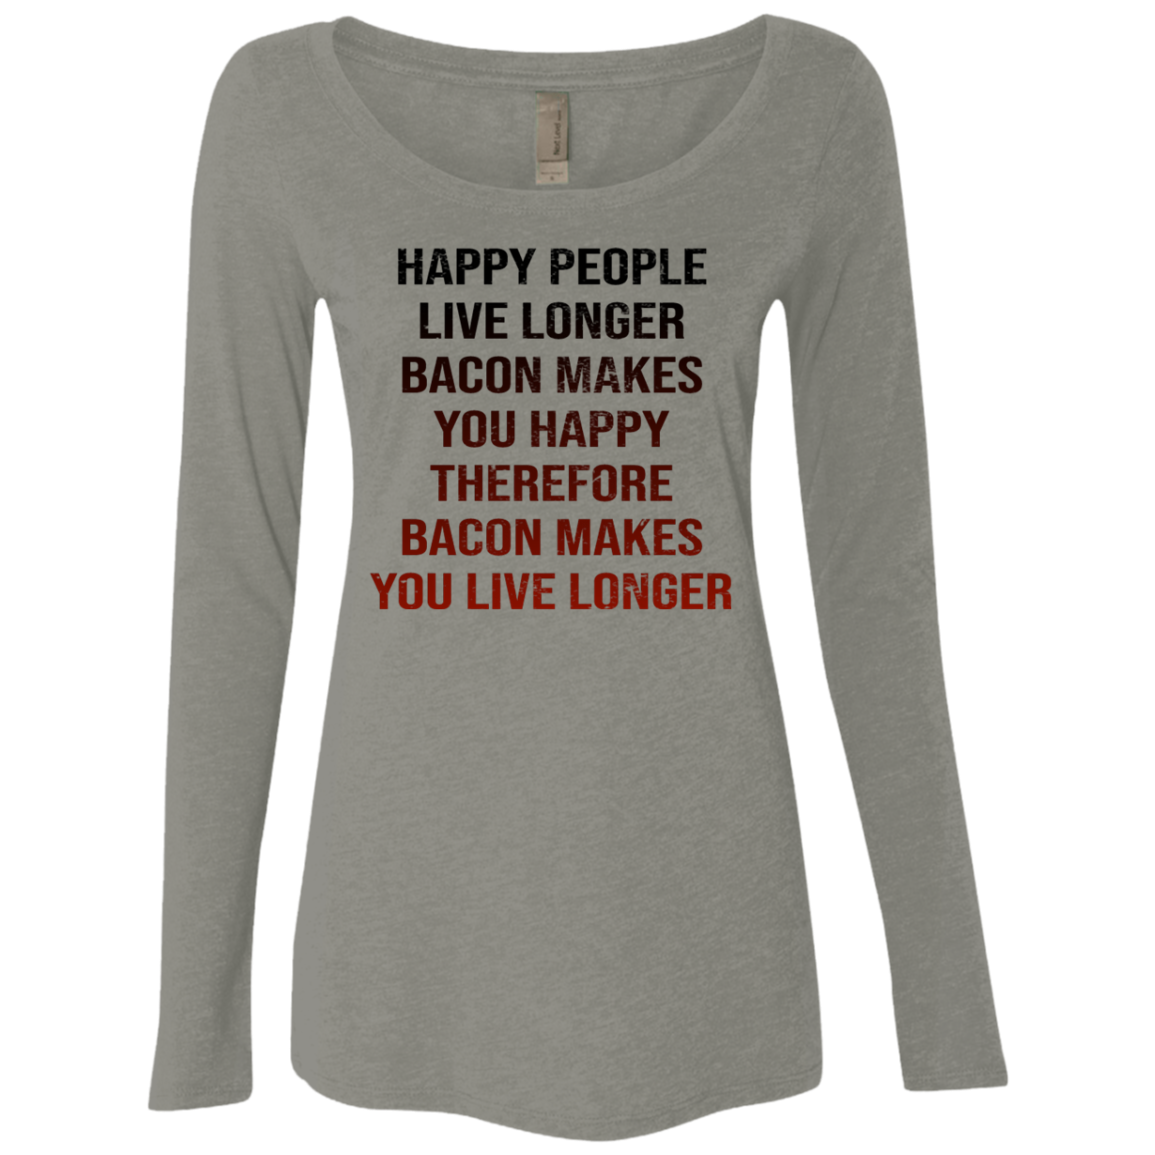 Happy People Live Longer Bacon Makes You Happy Therefore Bacon Makes You Live Longer Women's Long Sleeve Tee